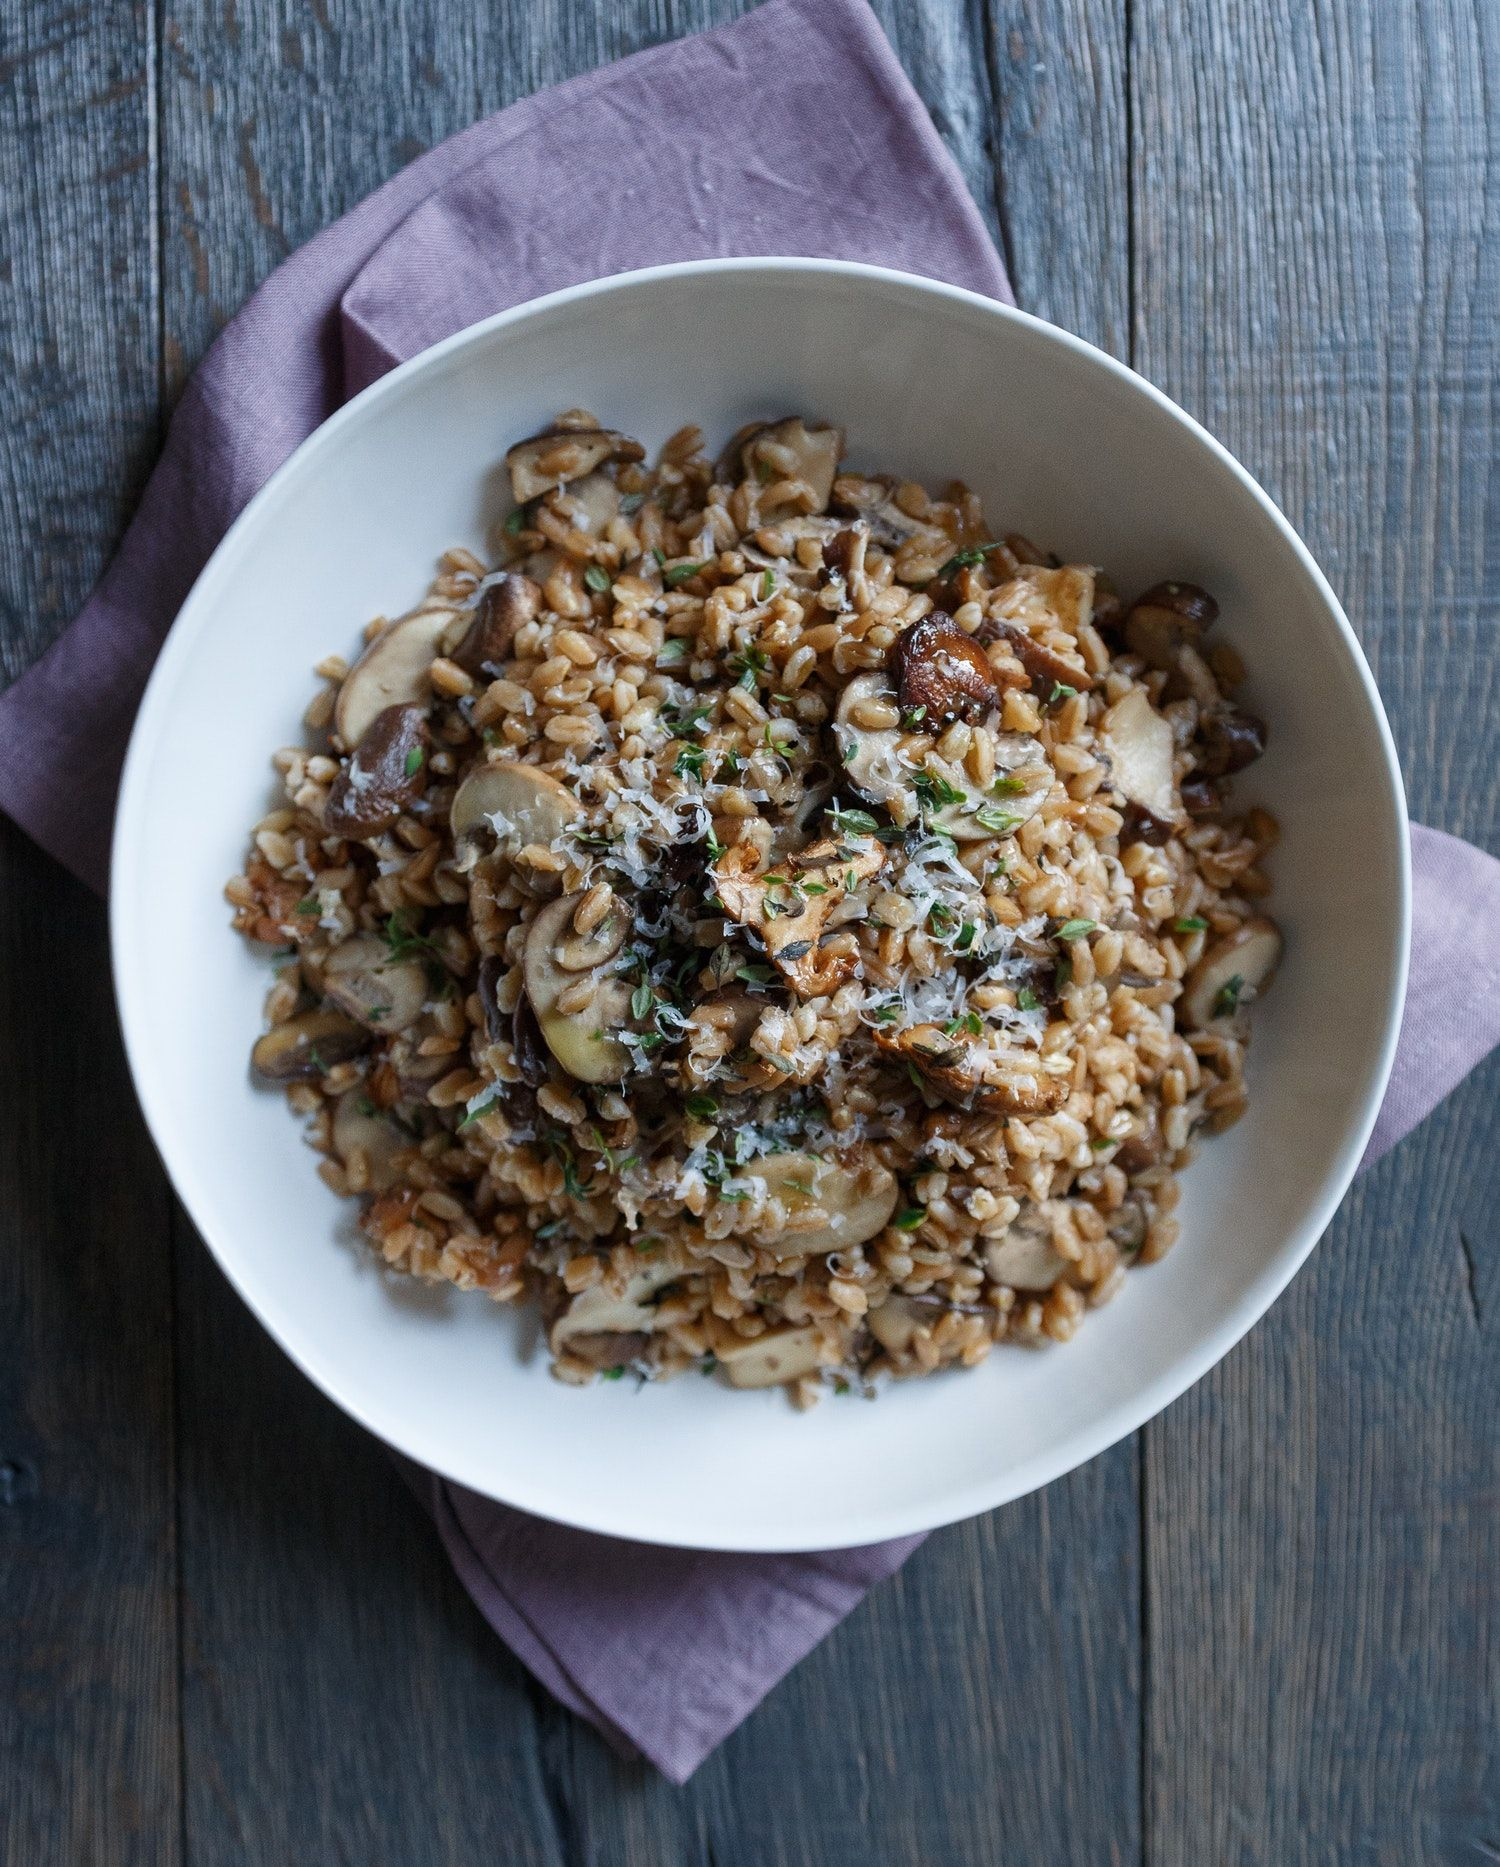 Forum on this topic: Farro and Wild Mushroom Dressing, farro-and-wild-mushroom-dressing/